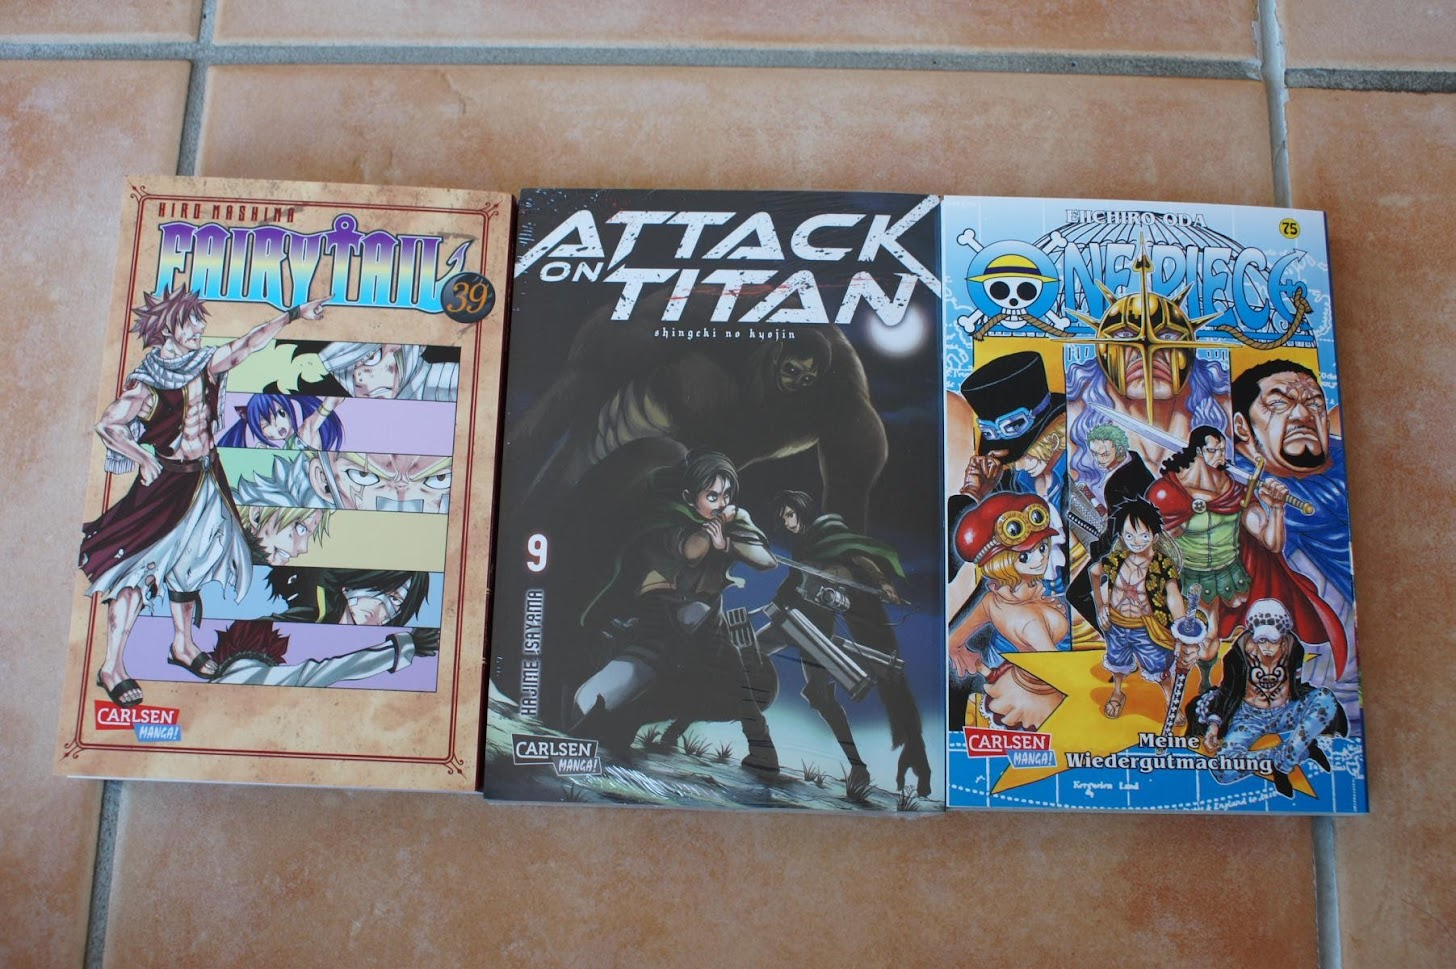 Carlsen Manga Fairy Tail Attack on Titan One Piece